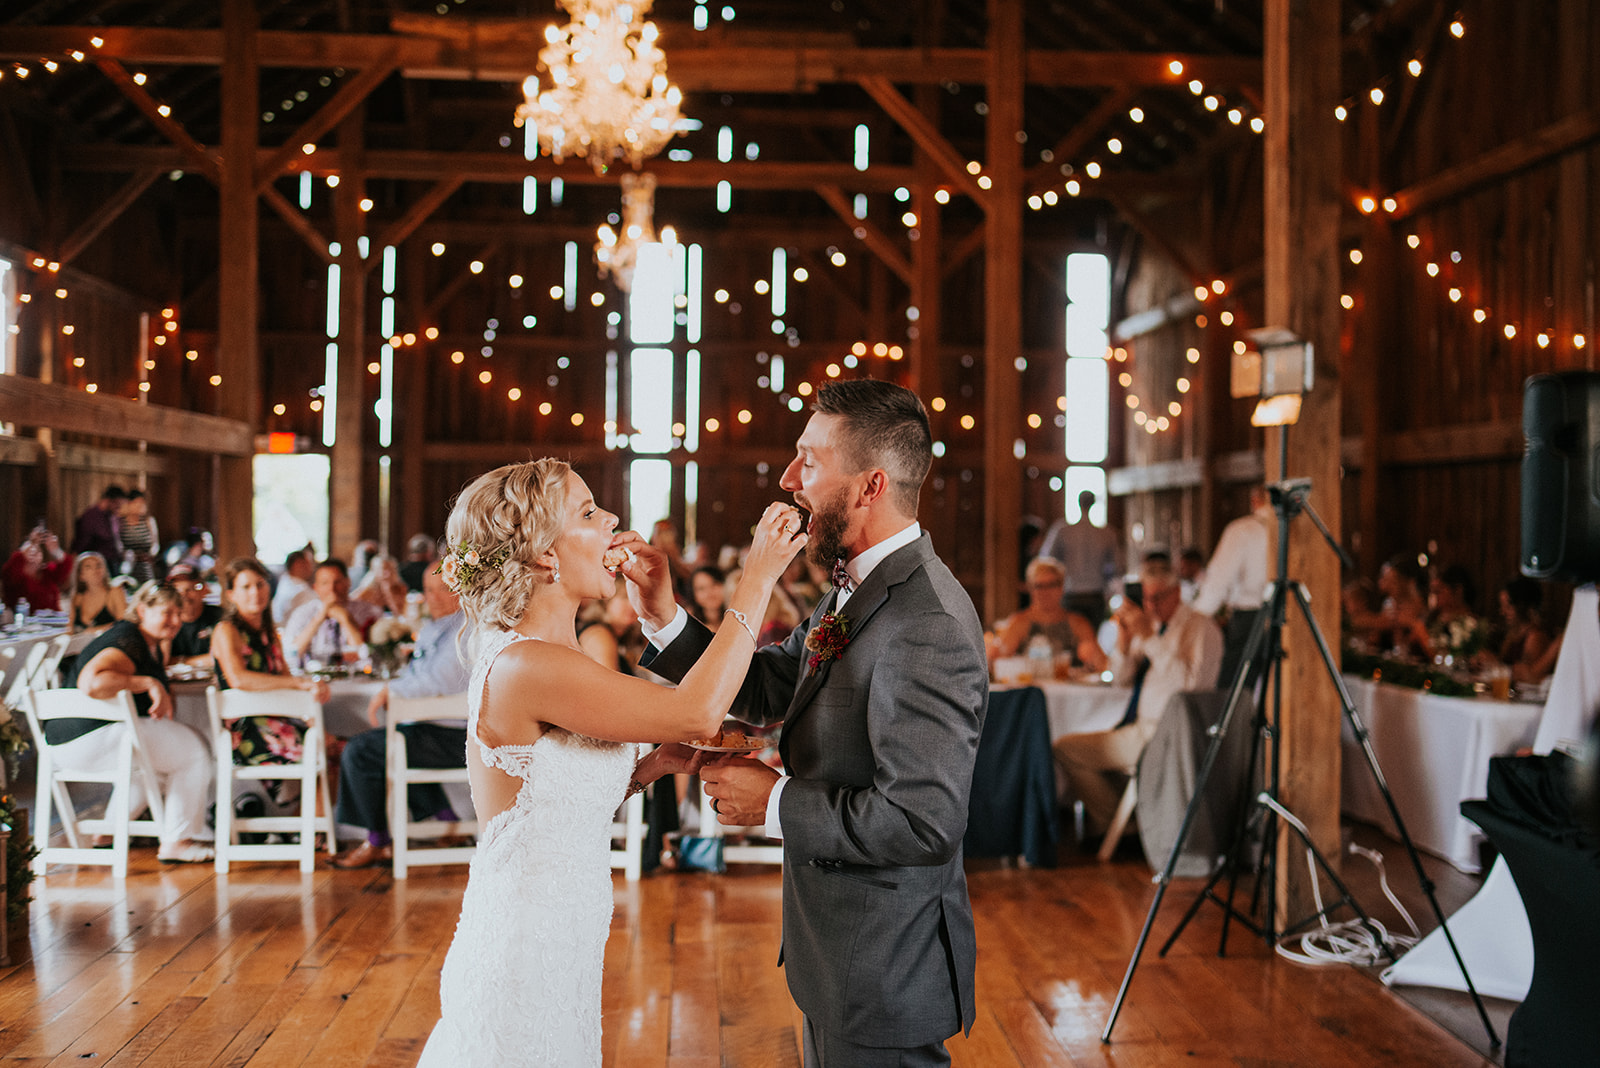 overthevineswisconsinwedding_1202.jpg